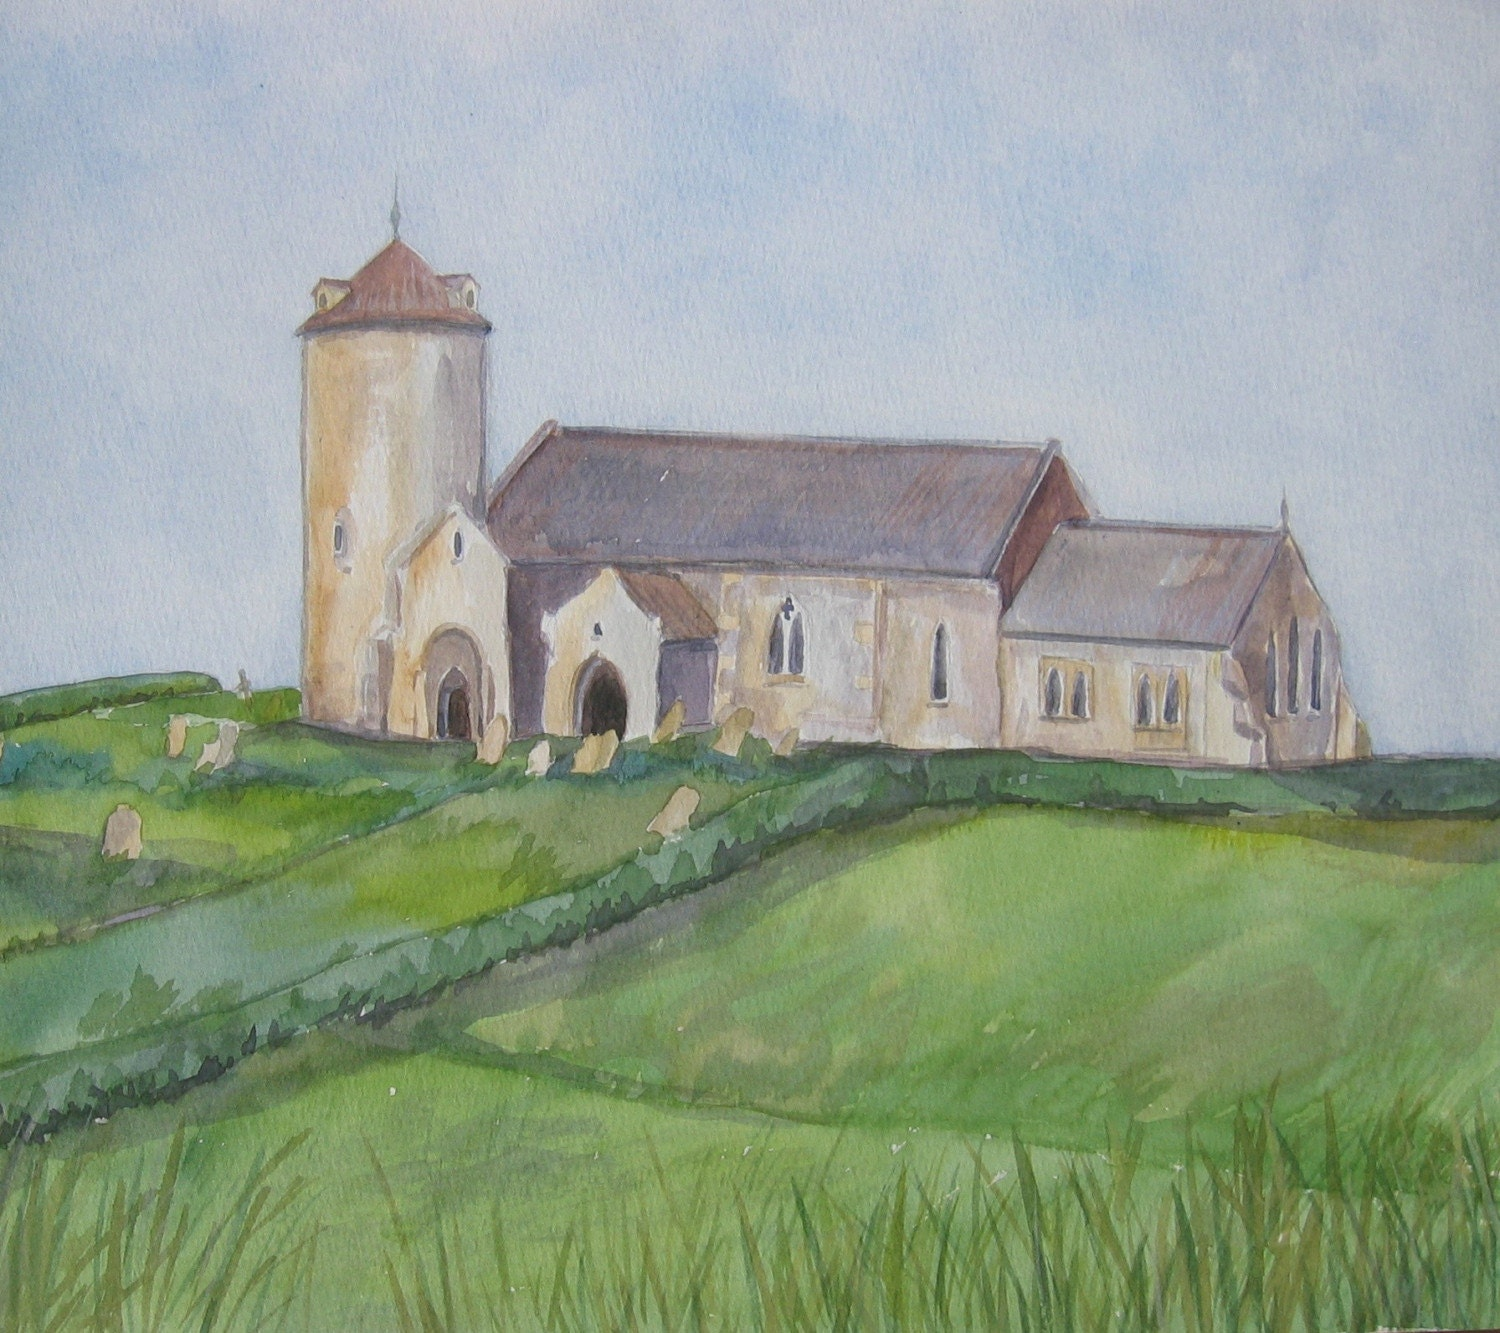 Church on a hill - Original Watercolour painting